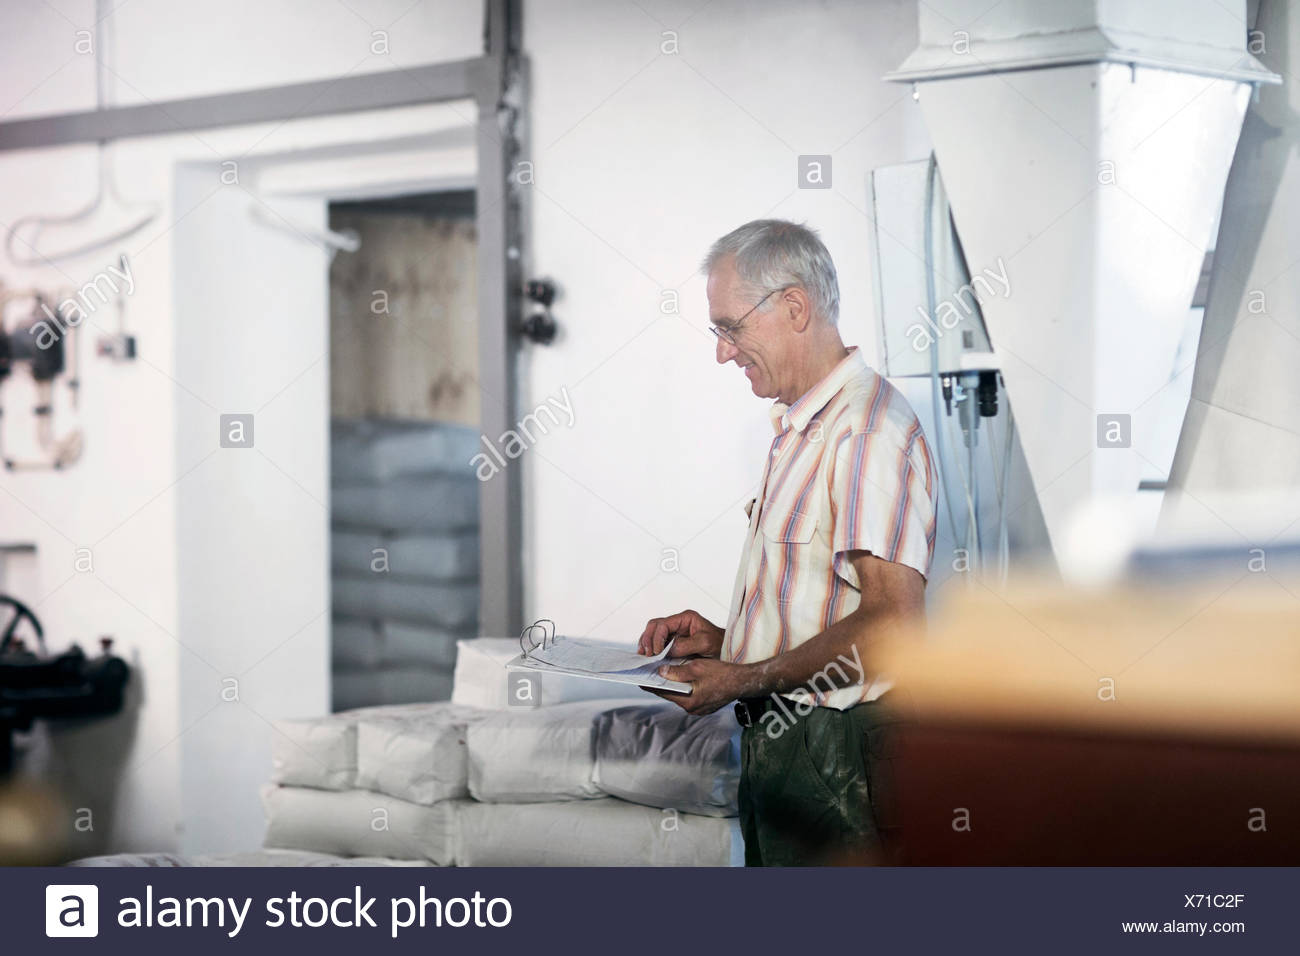 Male miller stock taking sacks of flour at wheat mill - Stock Image